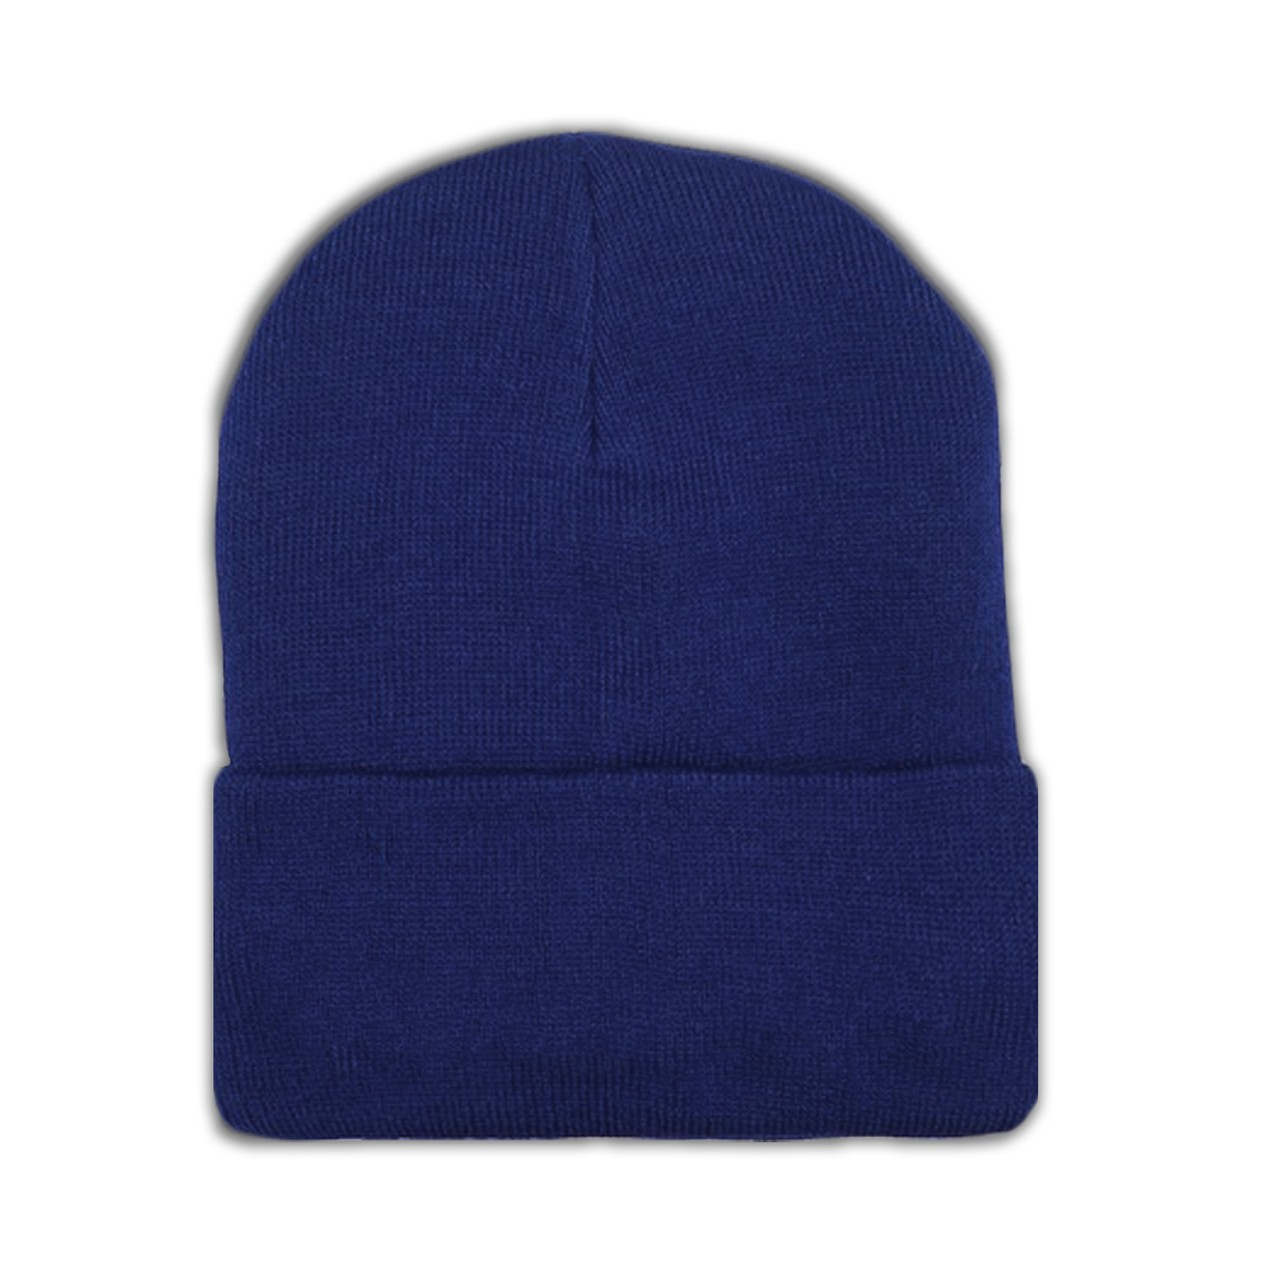 90874ea4d1cec Polar Extreme Thermal Fleece Lined Winter Hat Beanie - Tanga